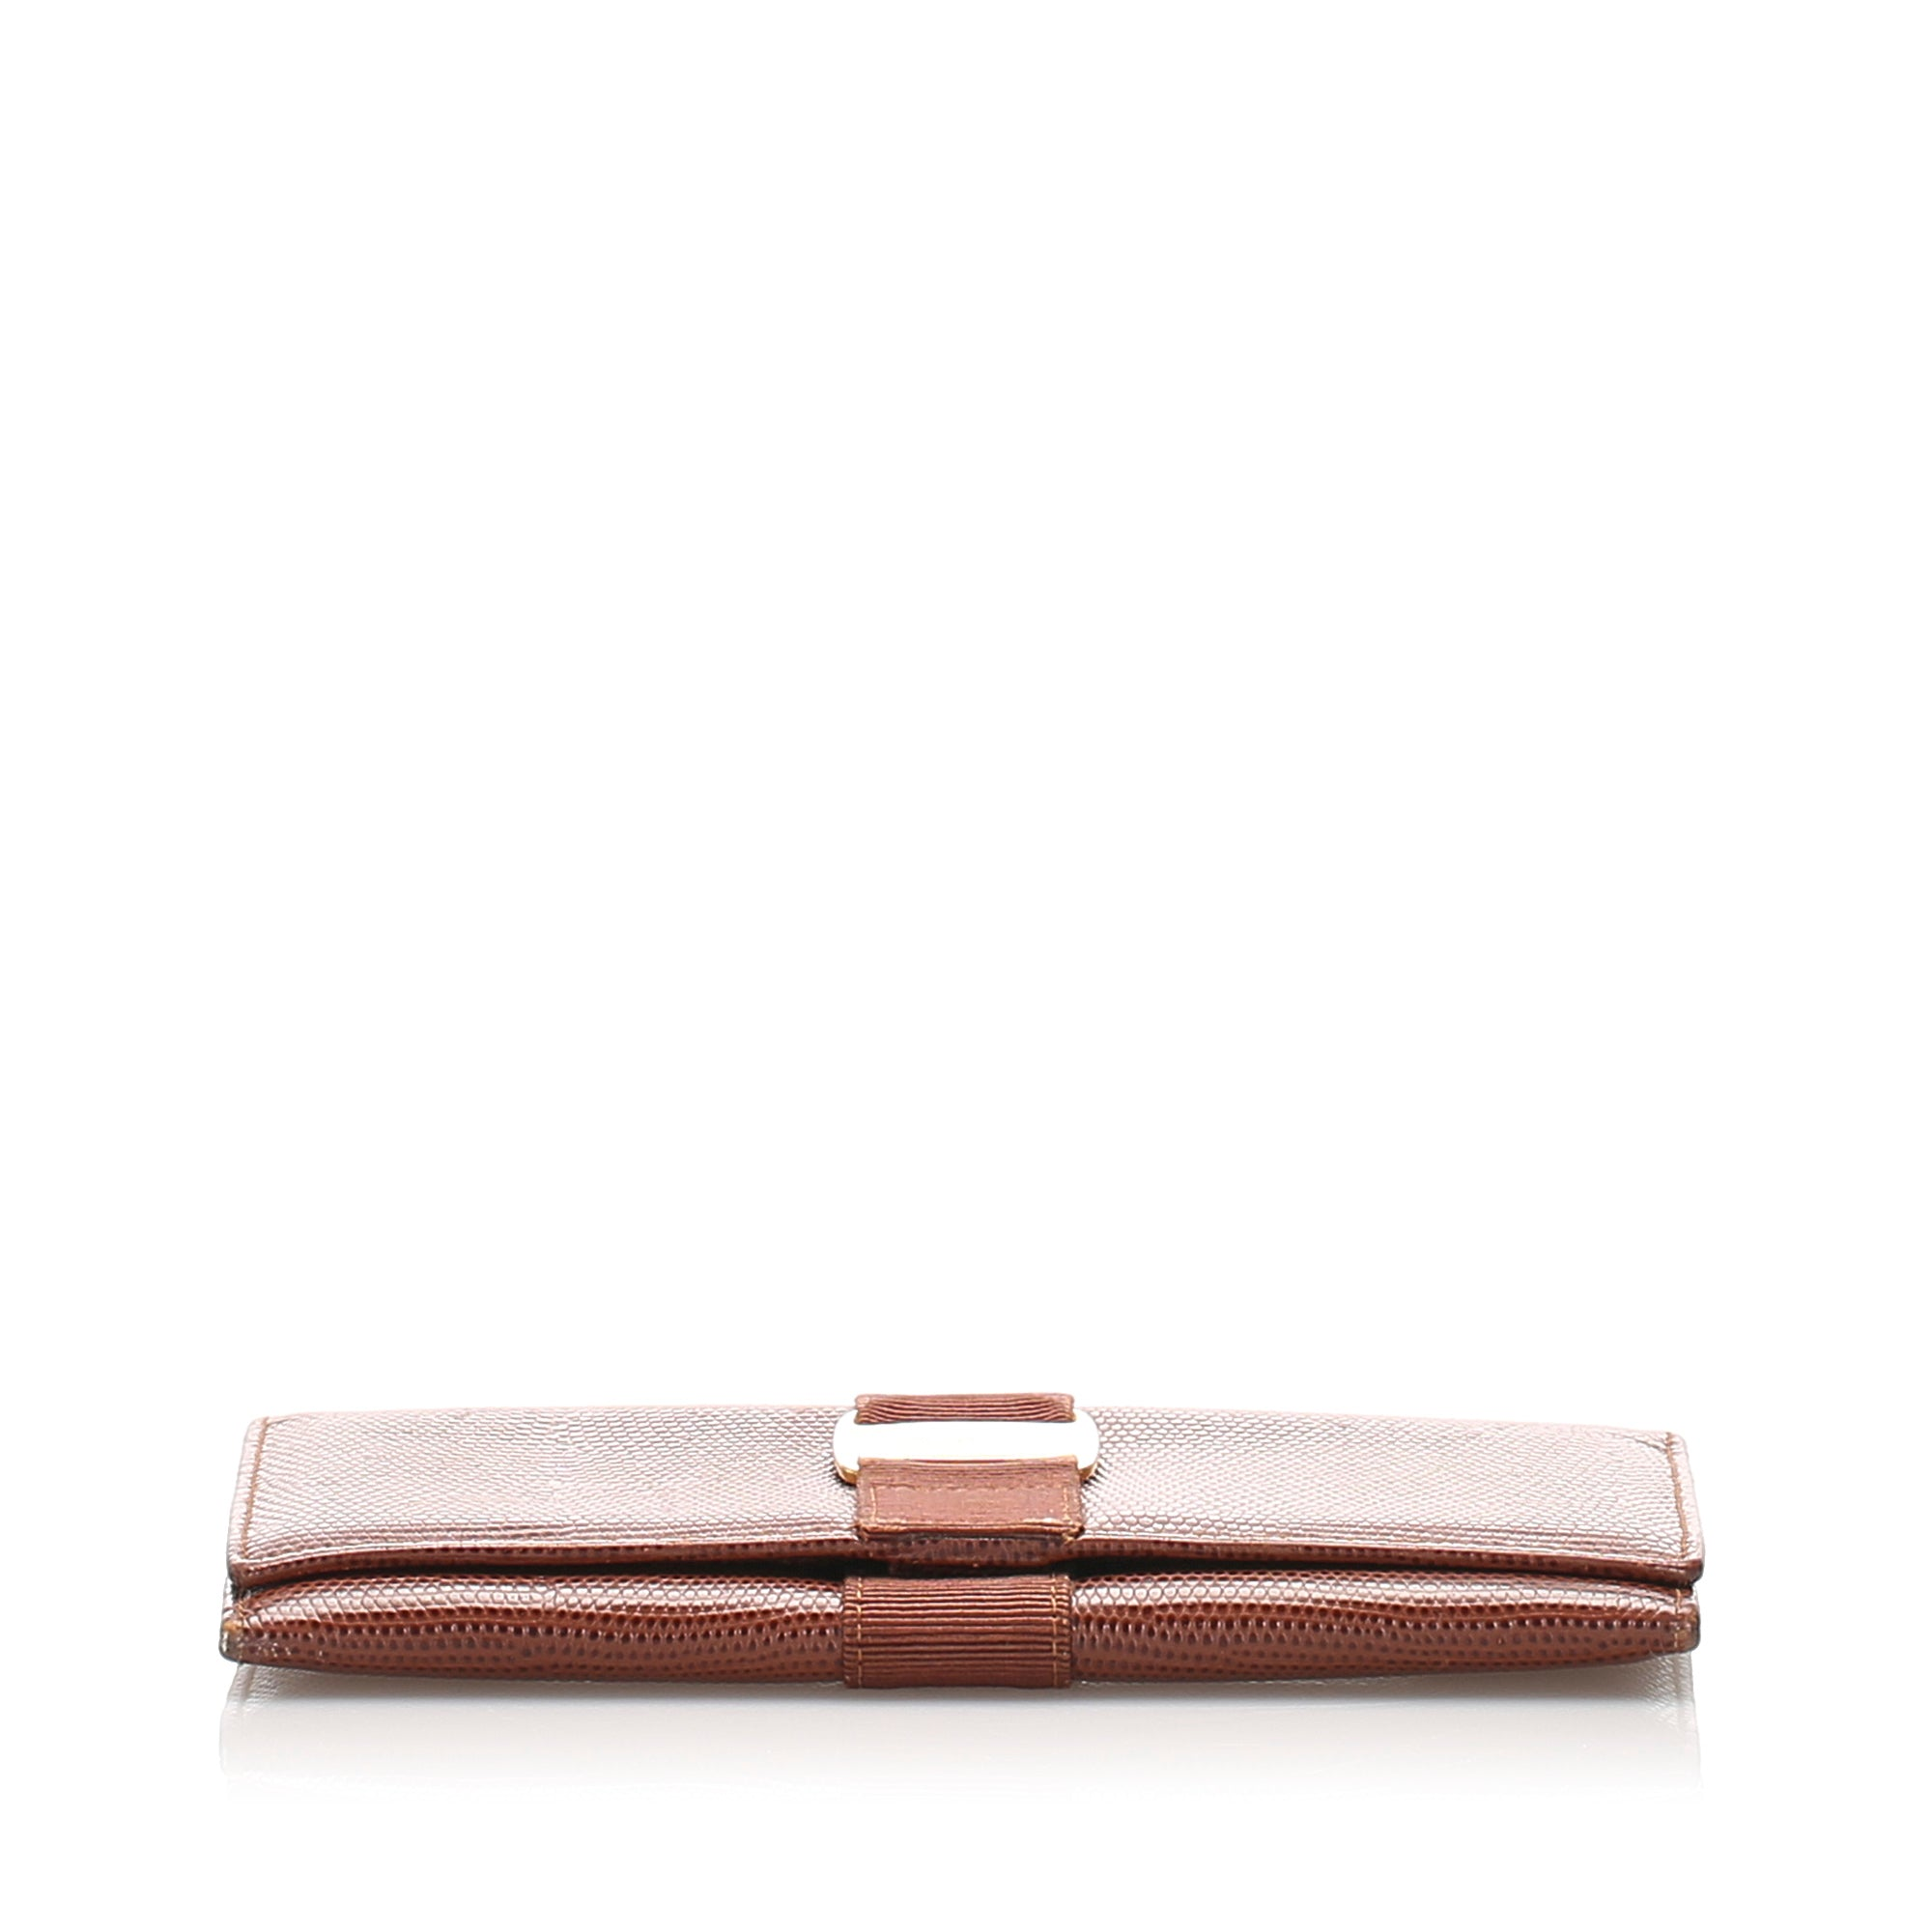 Ferragamo Brown Vara Leather Long Wallet